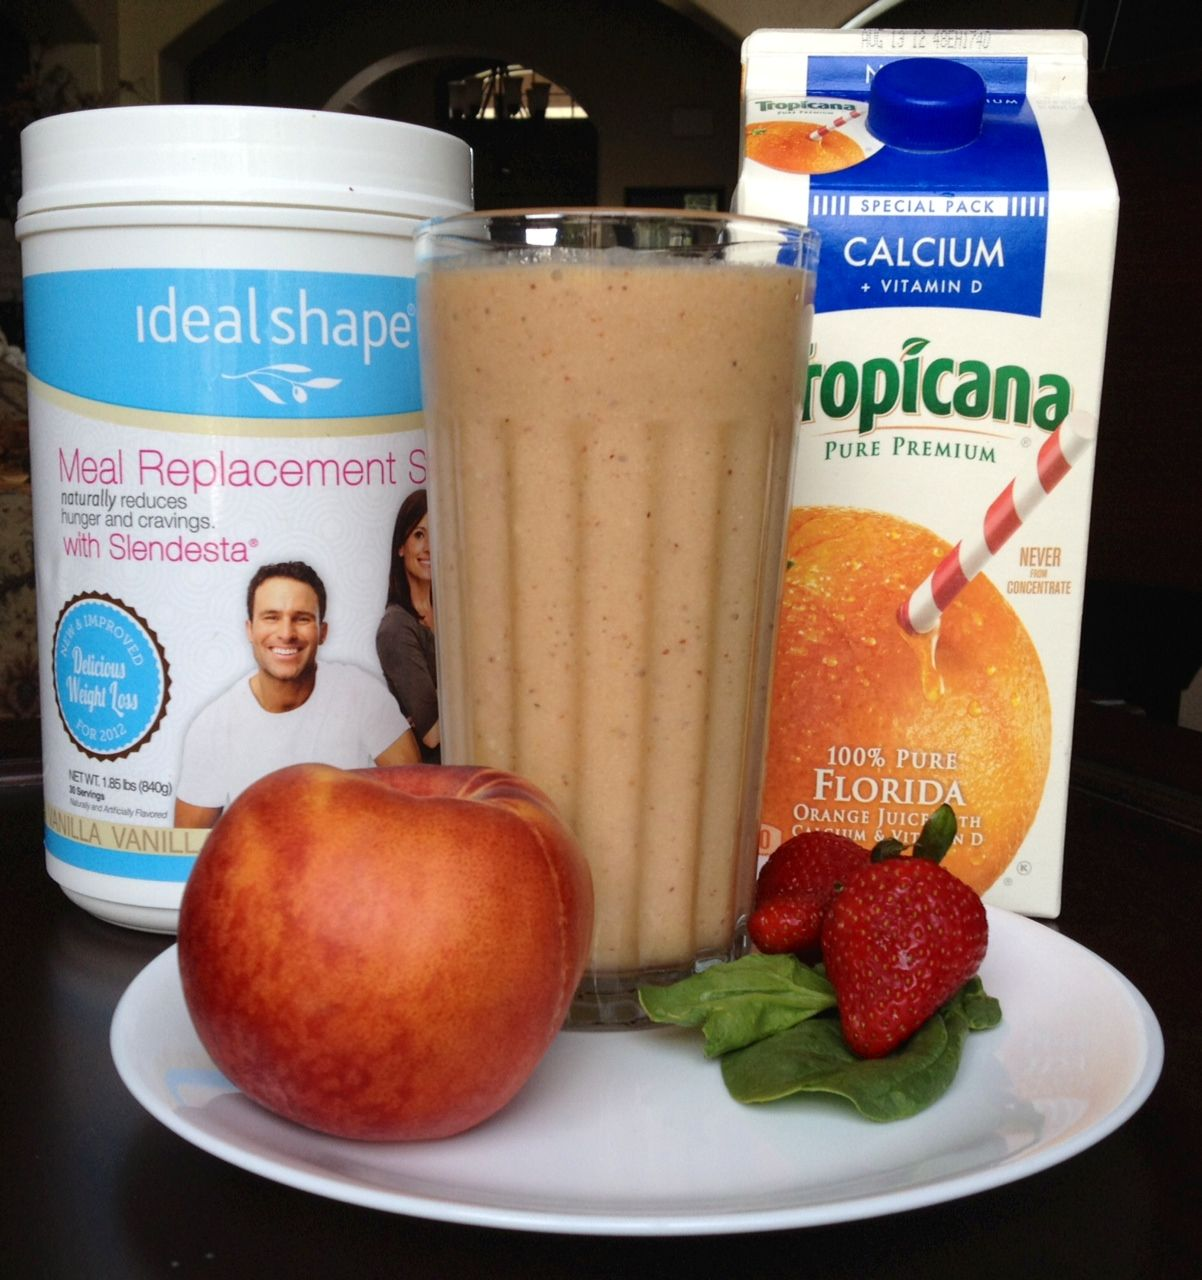 health idealshape meal replacement diet